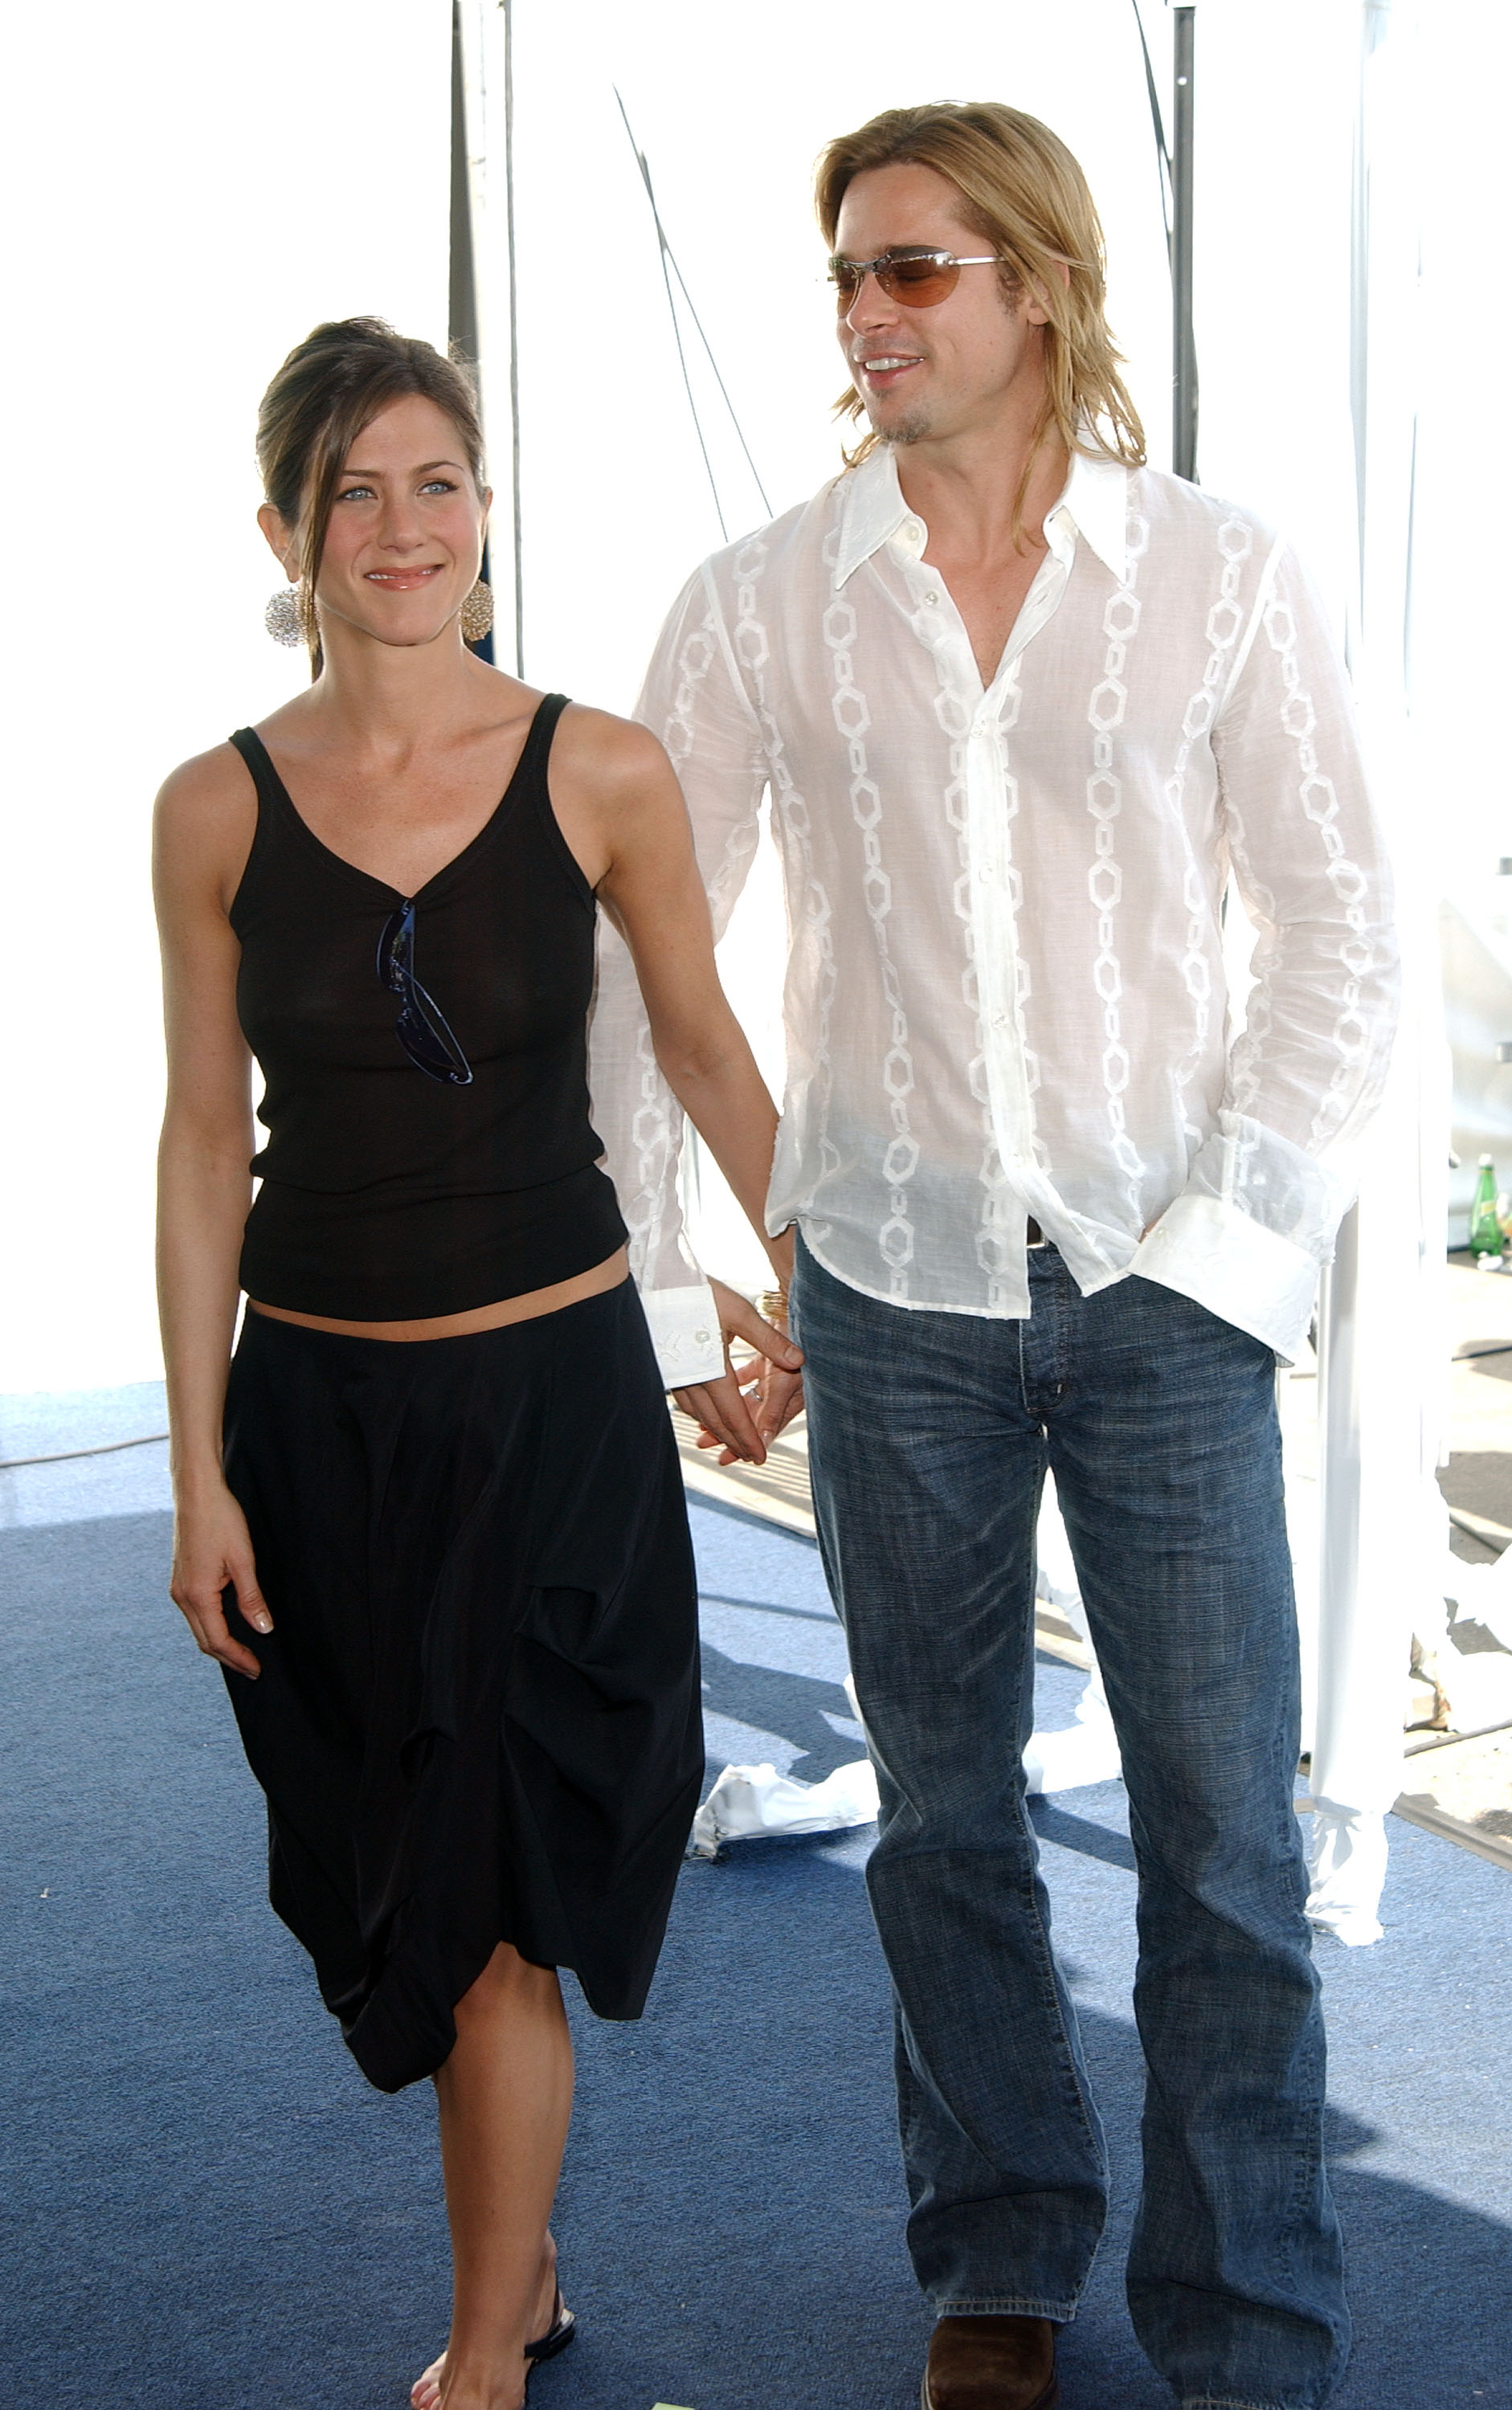 Actors Jennifer Aniston and Brad Pitt attend the 2003 IFP Independent Spirit Awards on March 22, 2003 in Santa Monica, California. (Photo by Jon Kopaloff/Getty Images)